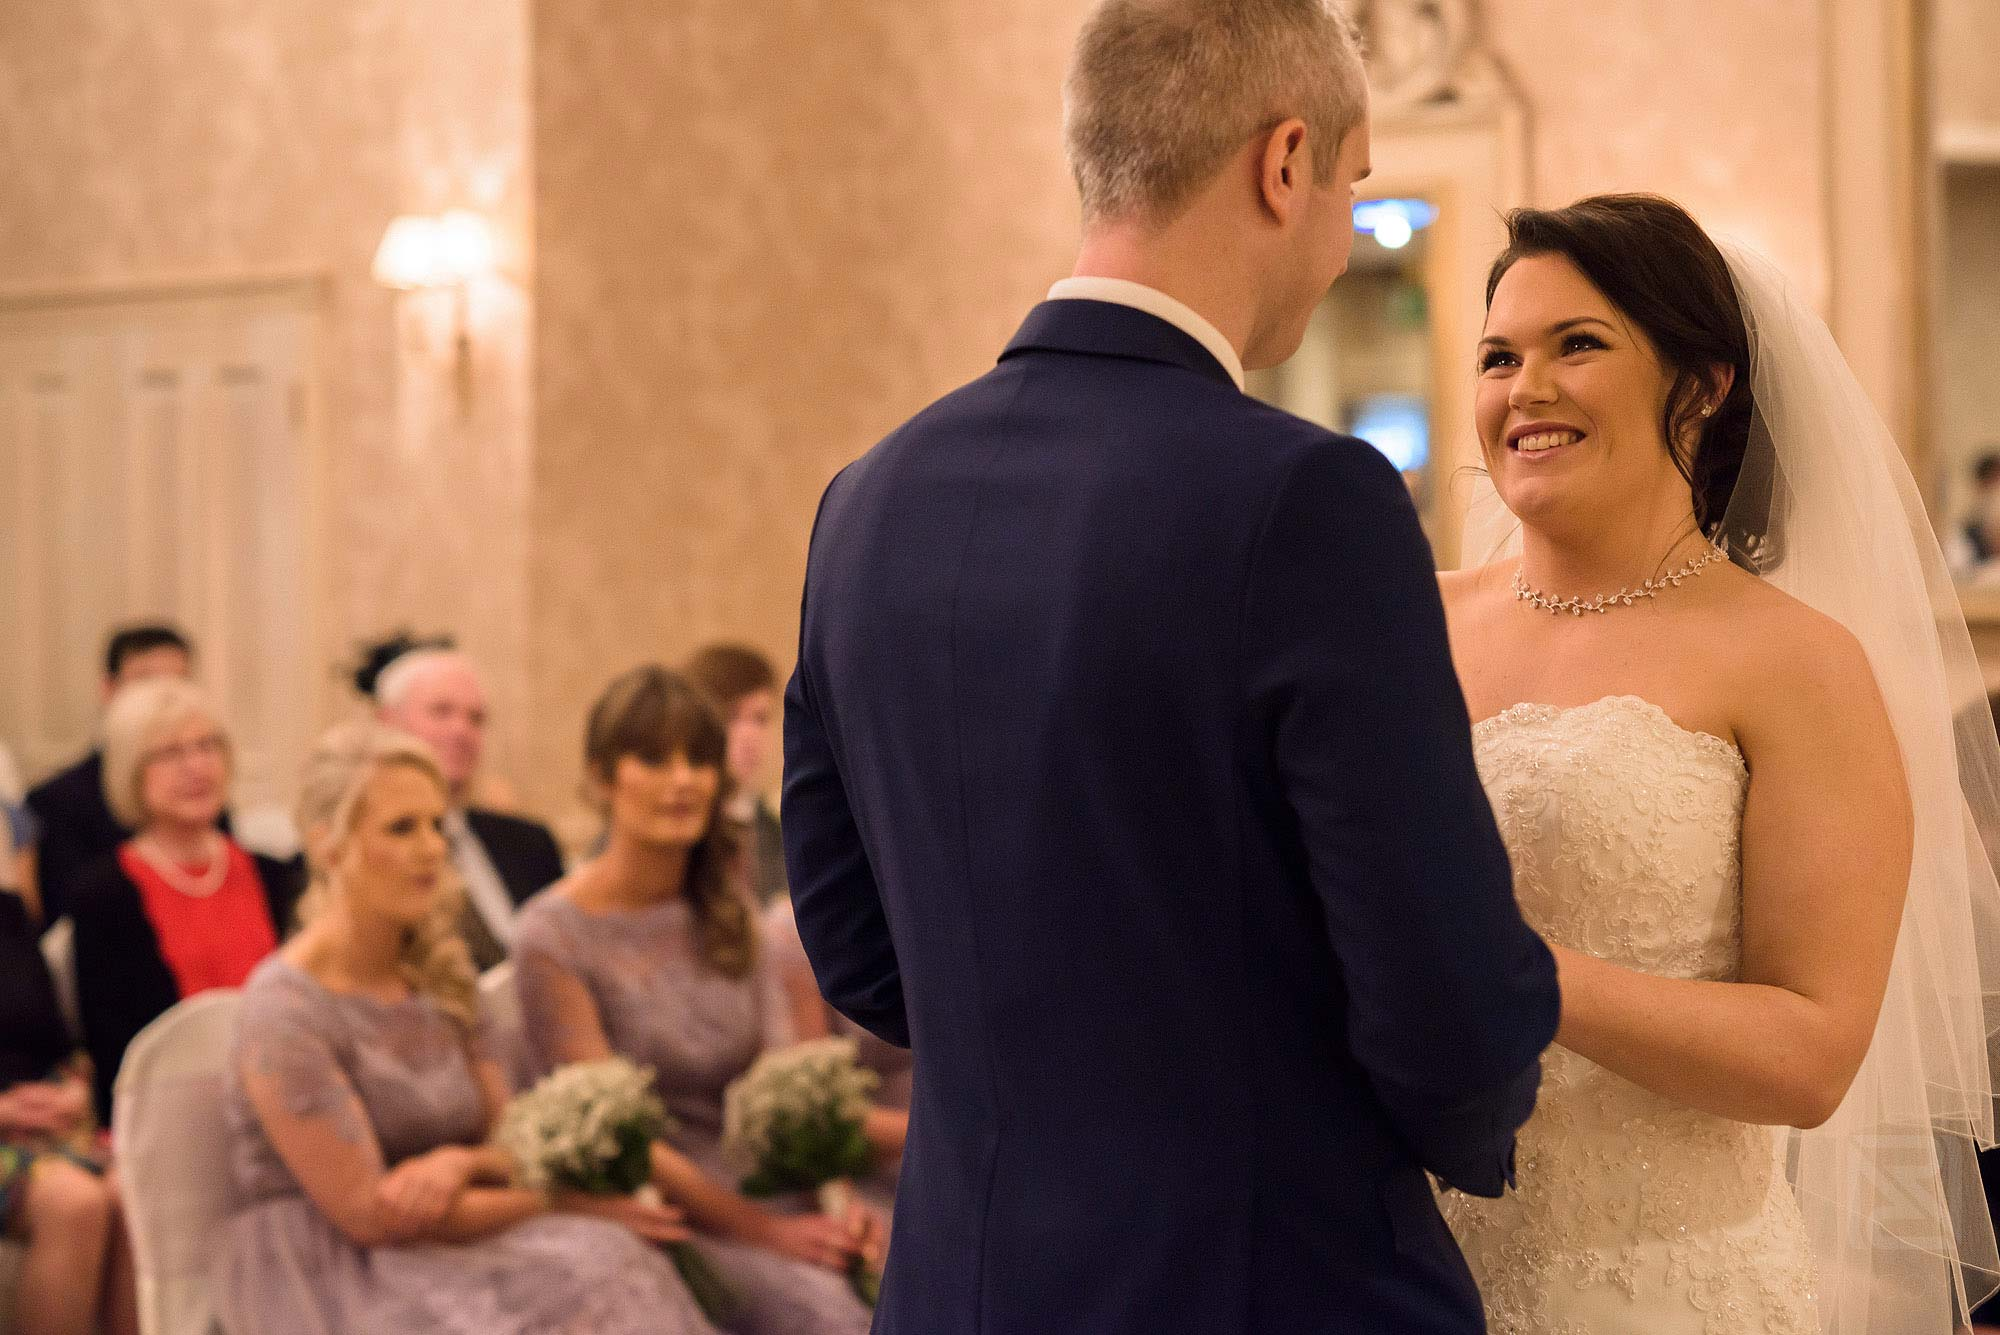 wedding ceremony at Rowton Hall in Cheshire